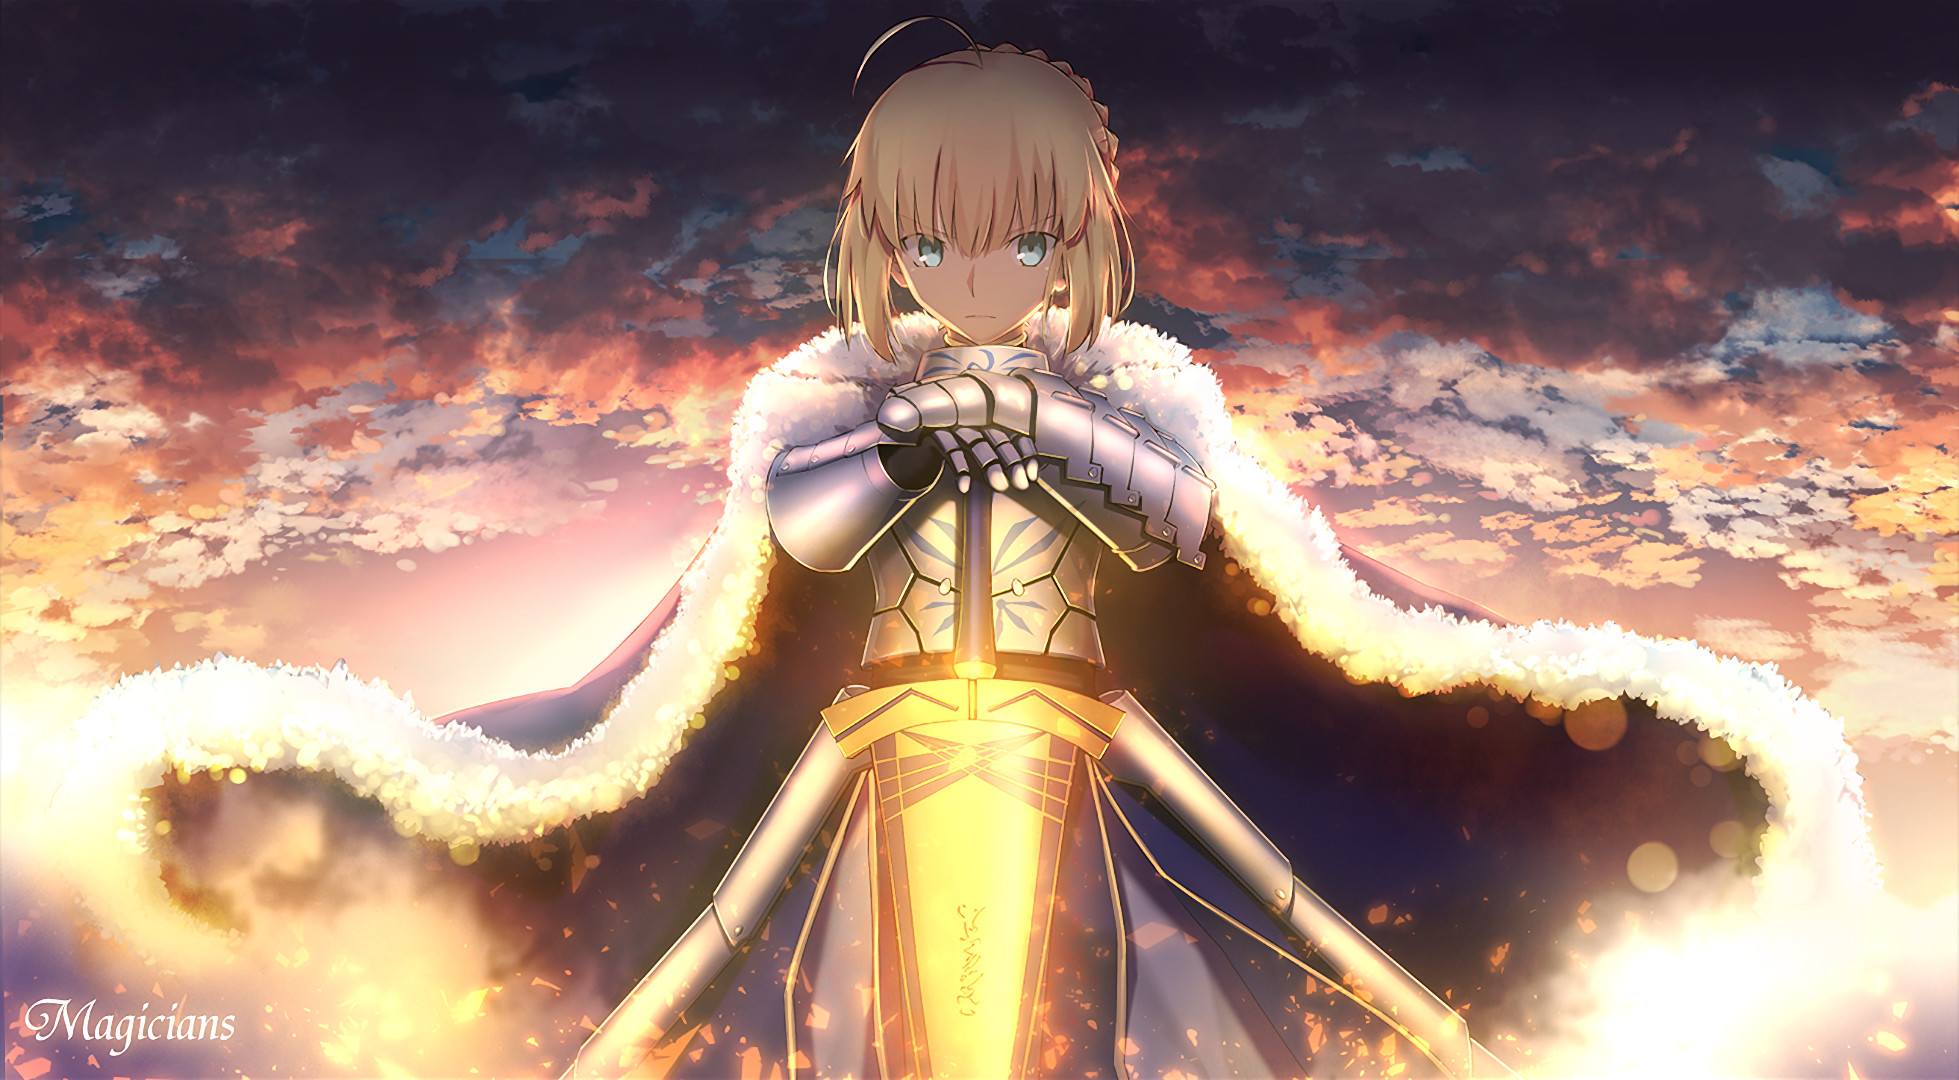 Anime – Fate/Stay Night Saber (Fate Series) Wallpaper